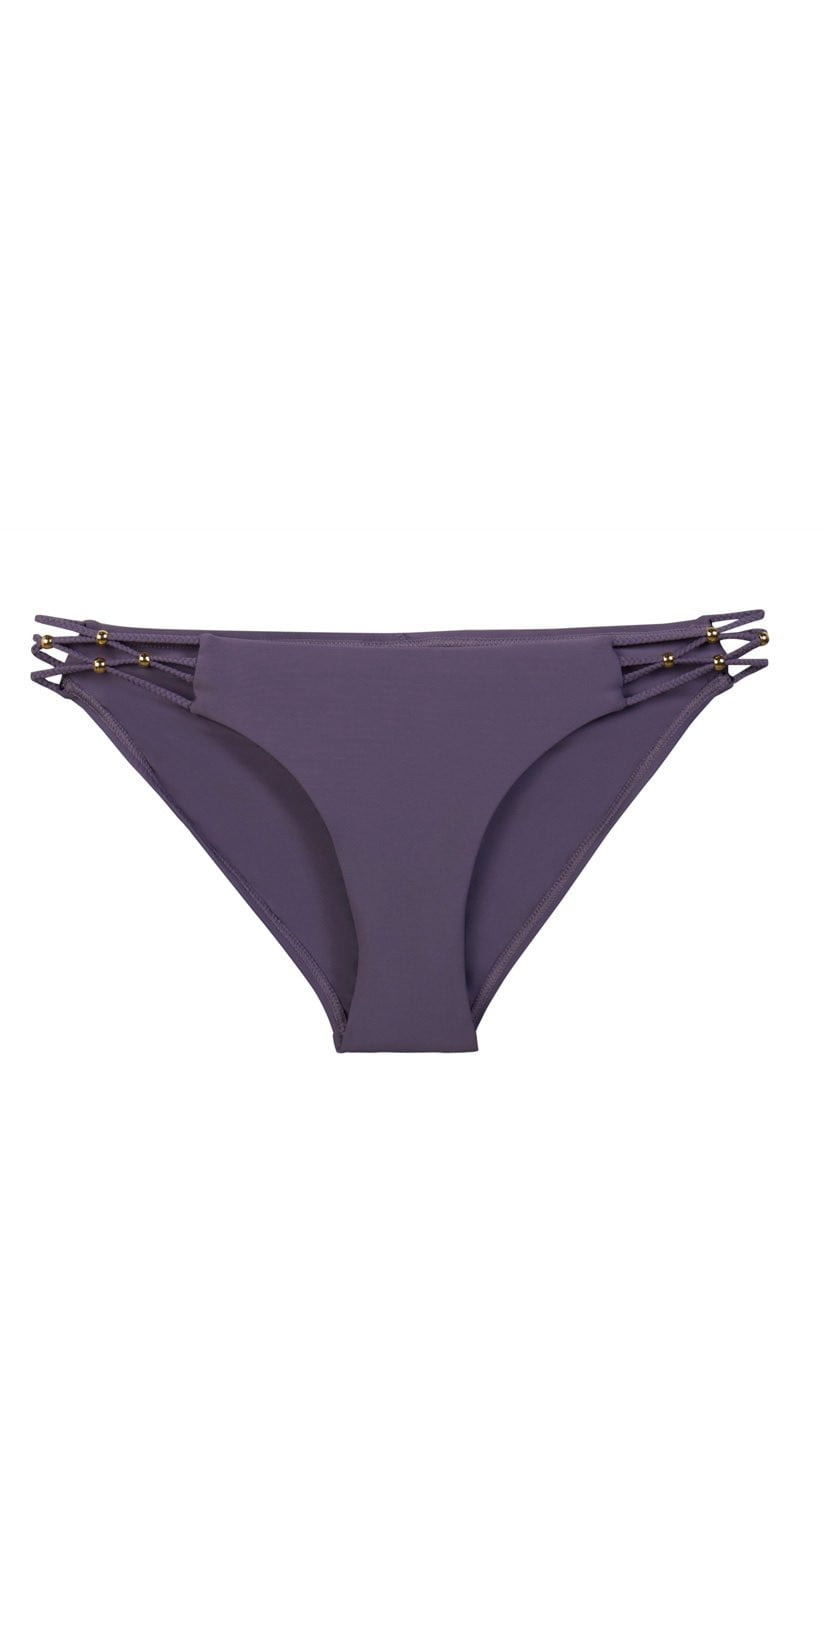 PilyQ Amethyst Braided Full Bottom AME-227F Full